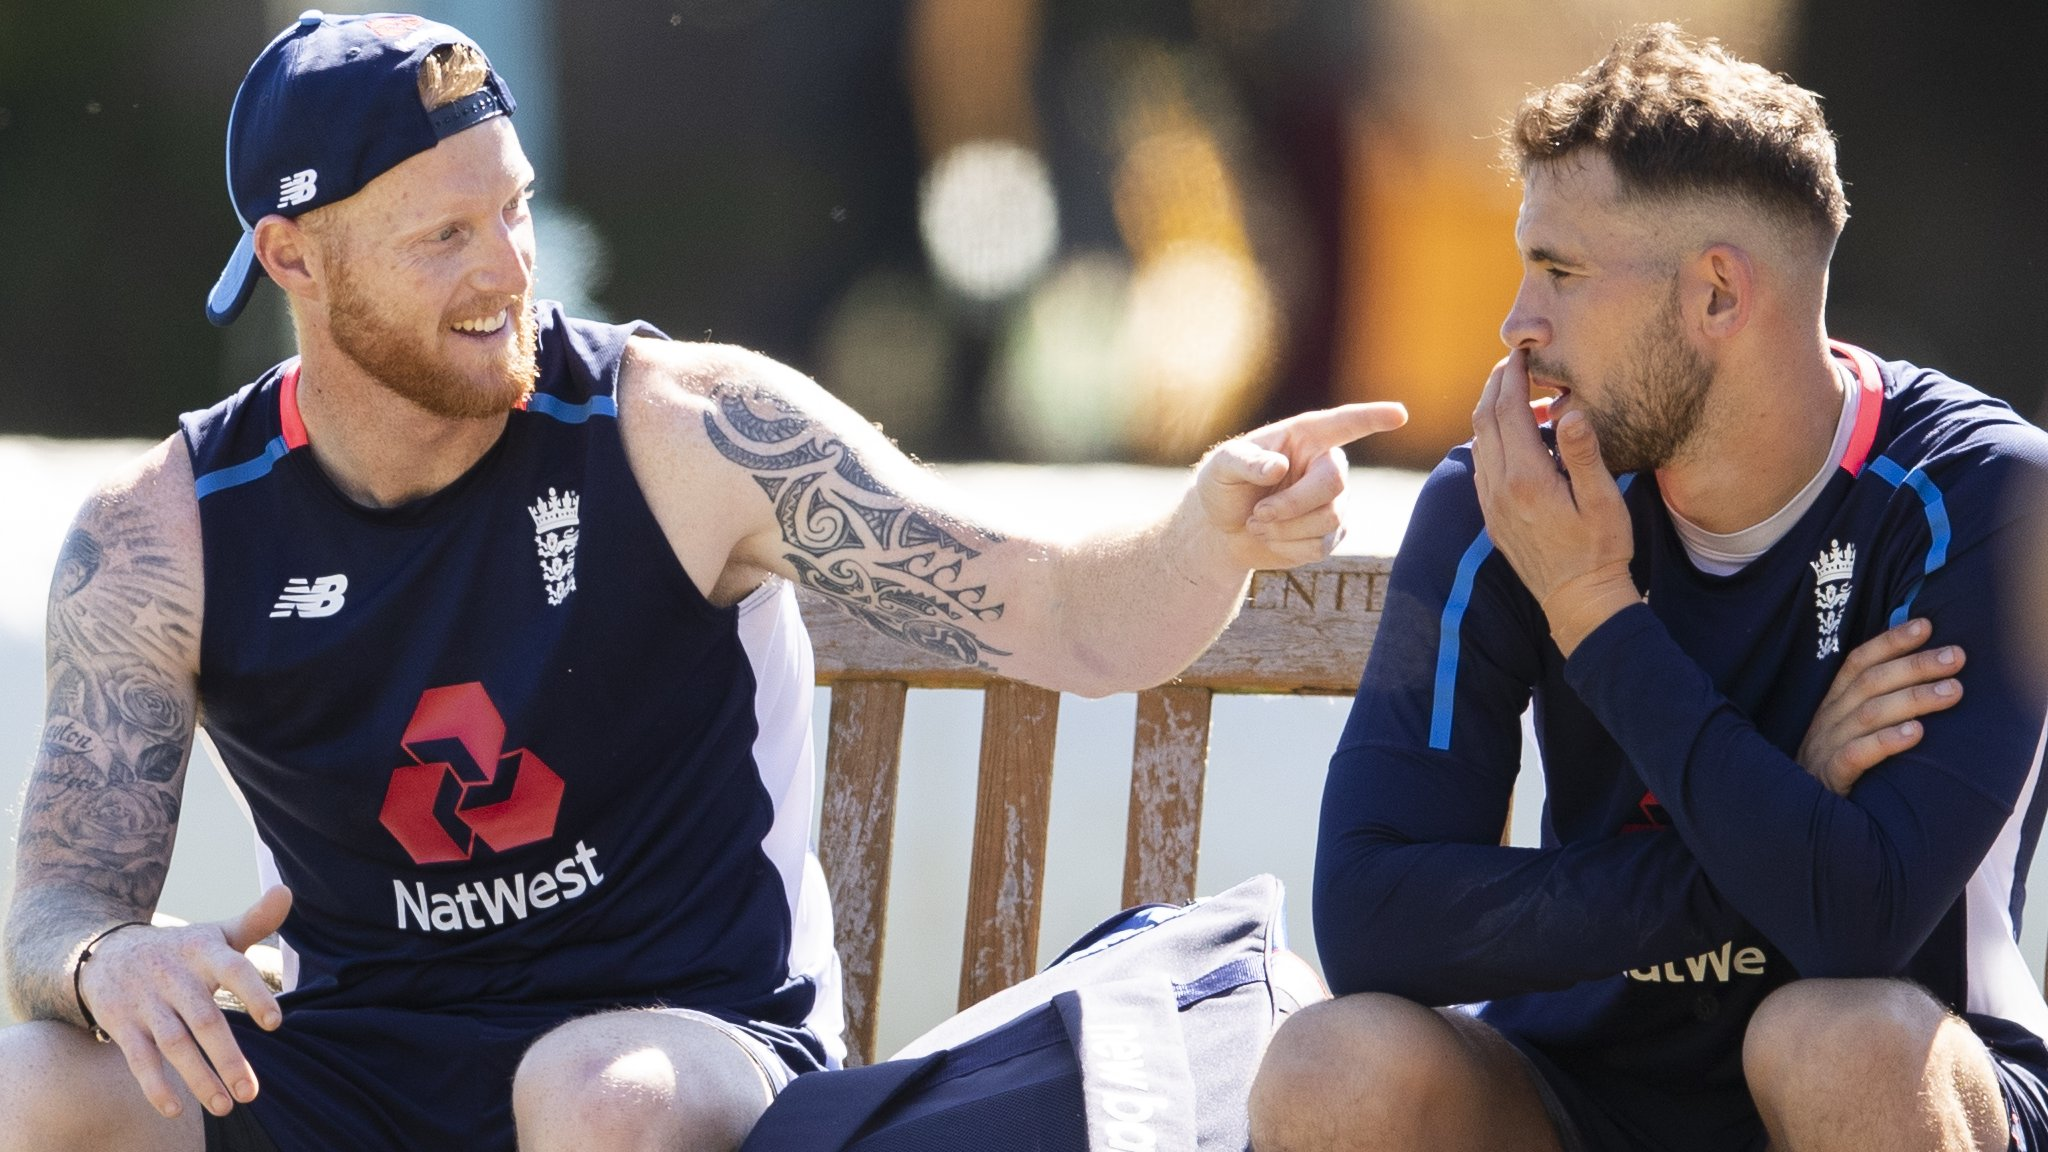 England's Ben Stokes & Alex Hales named in ODI squad for Sri Lanka series